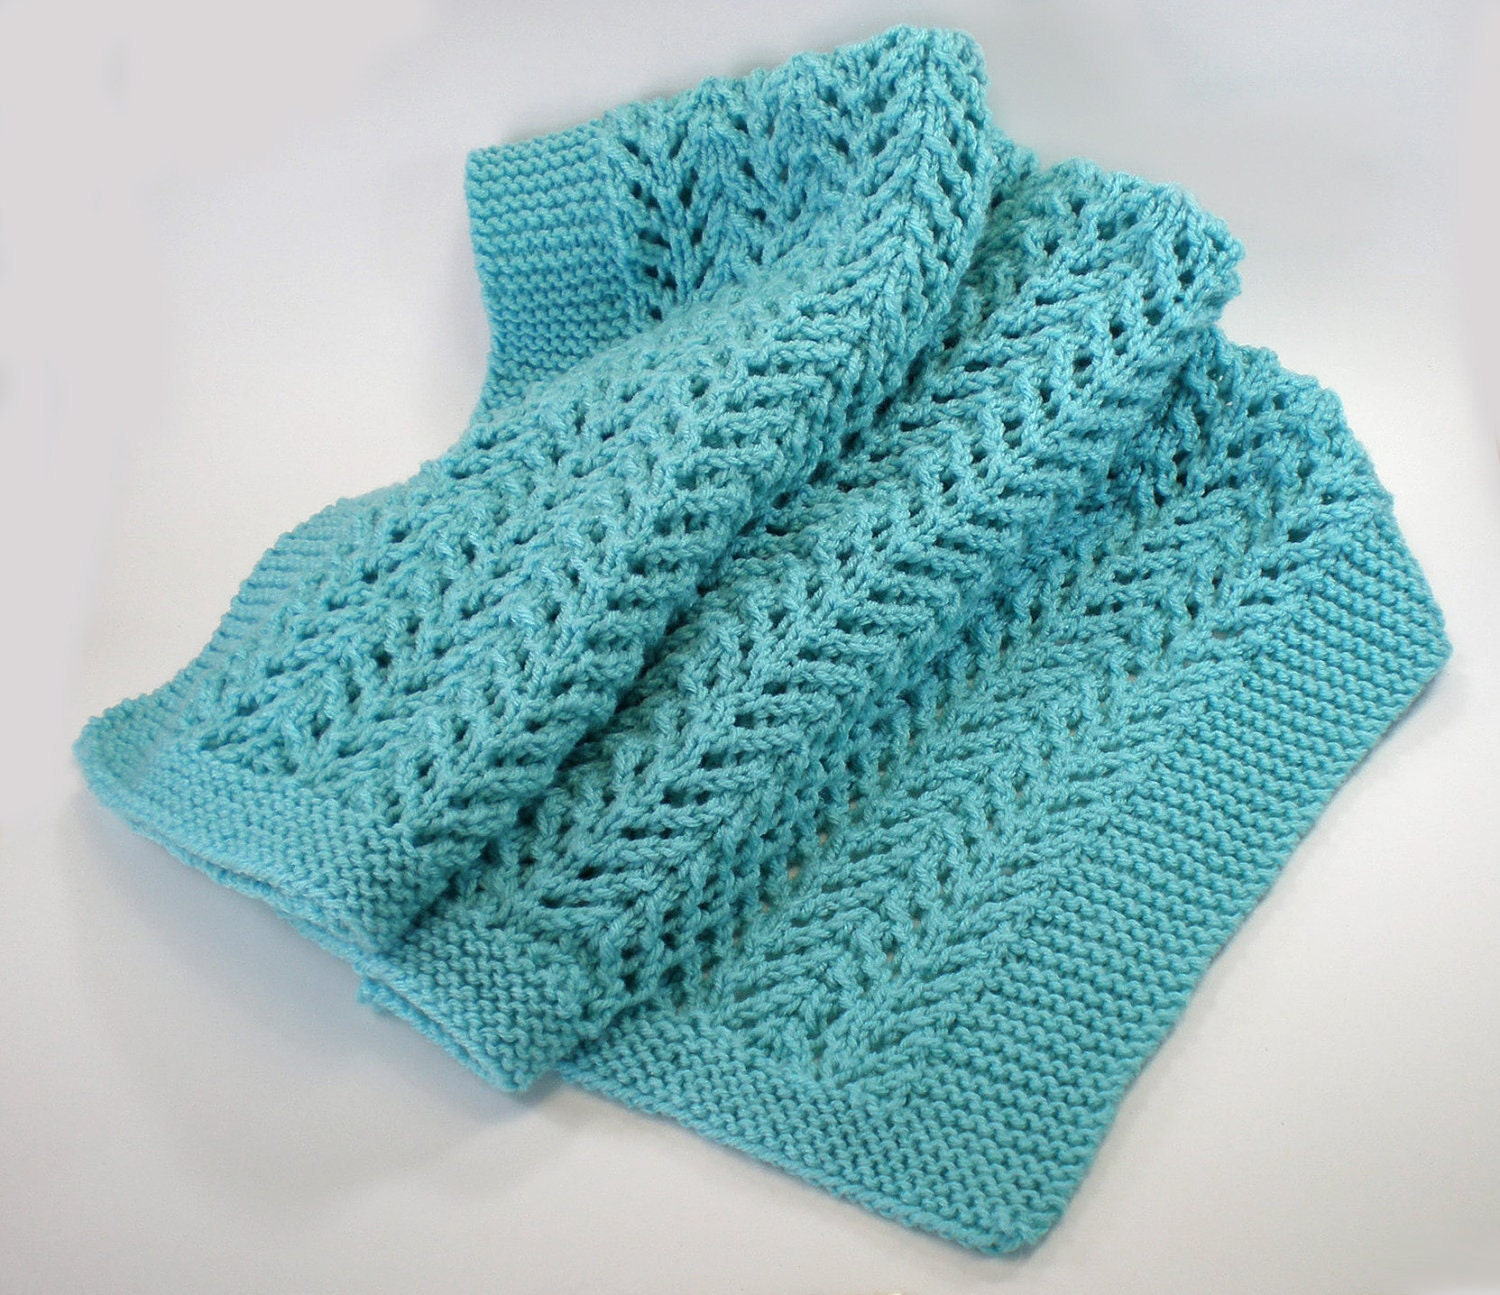 Quick Easy Baby Blanket Knitting Pattern : Heirloom knit baby blanket easy care machine washable.